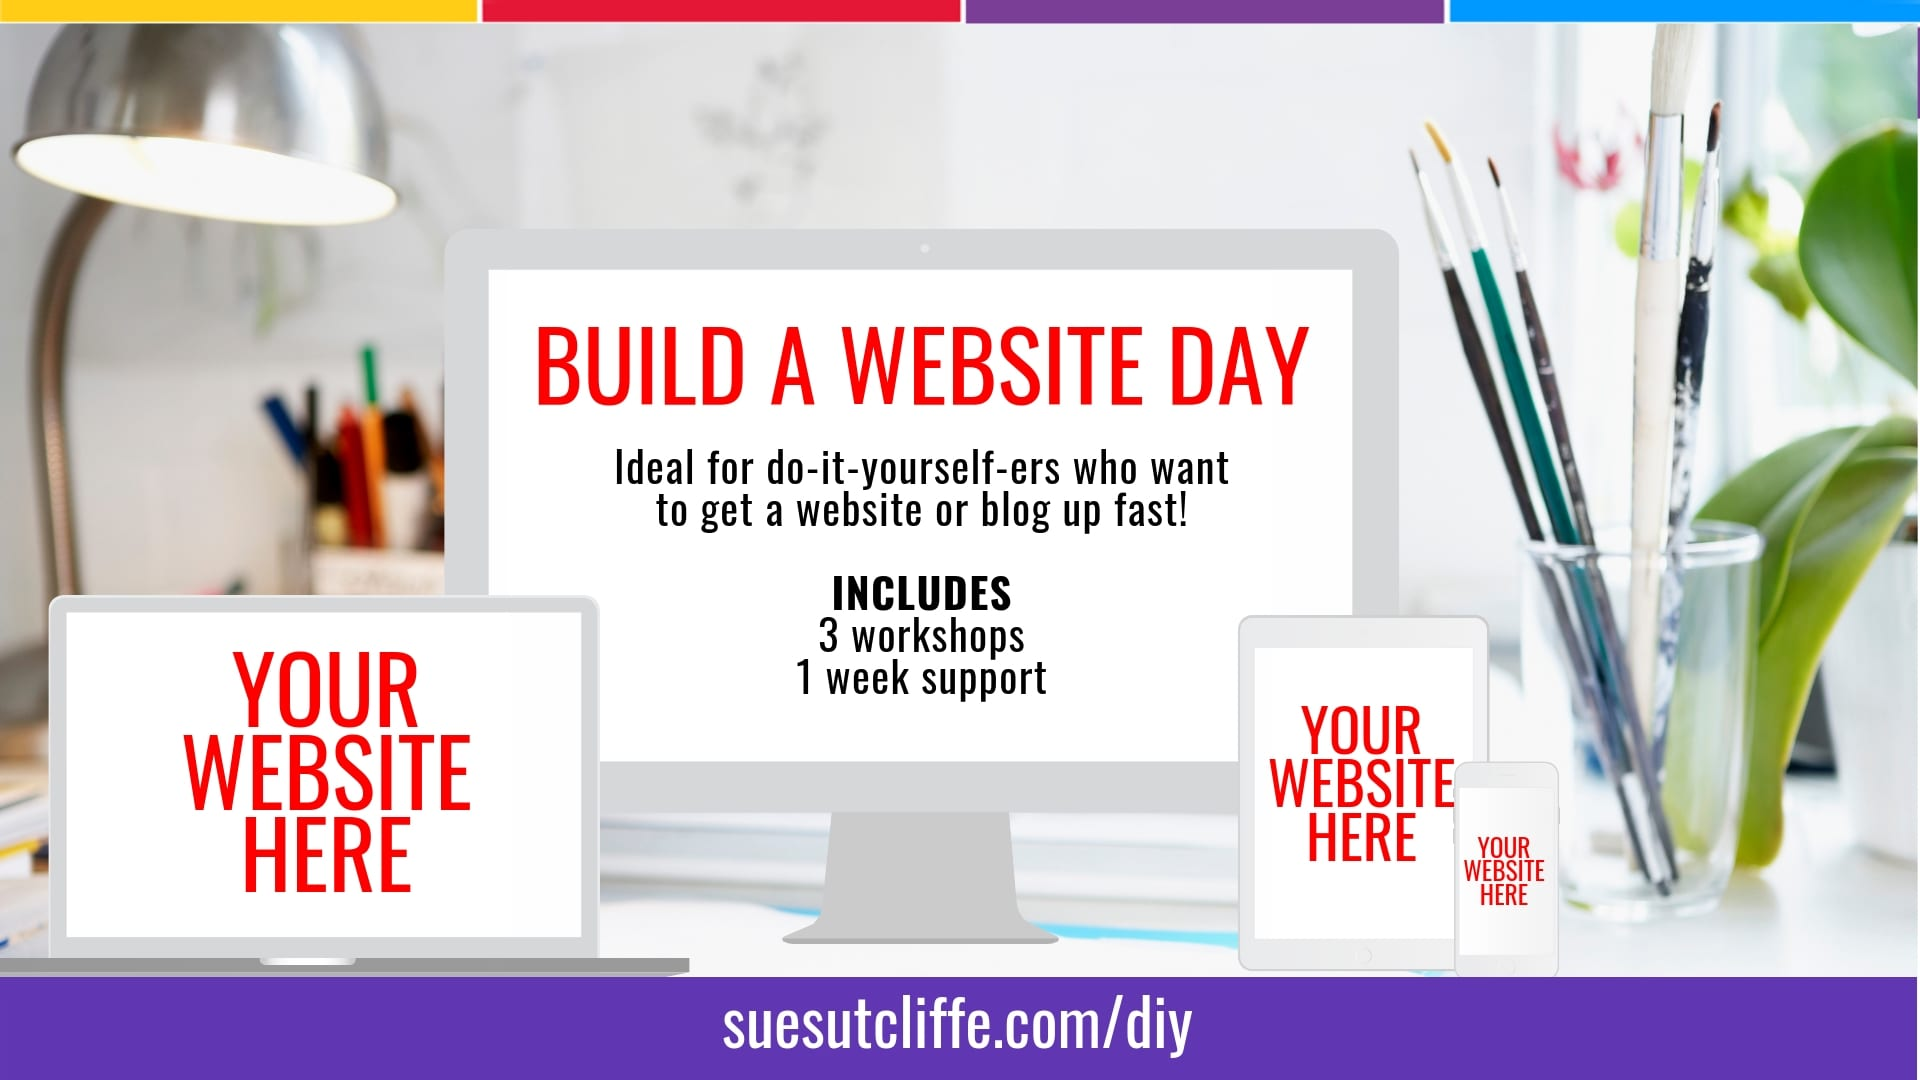 BUILD A WEBSITE DAY